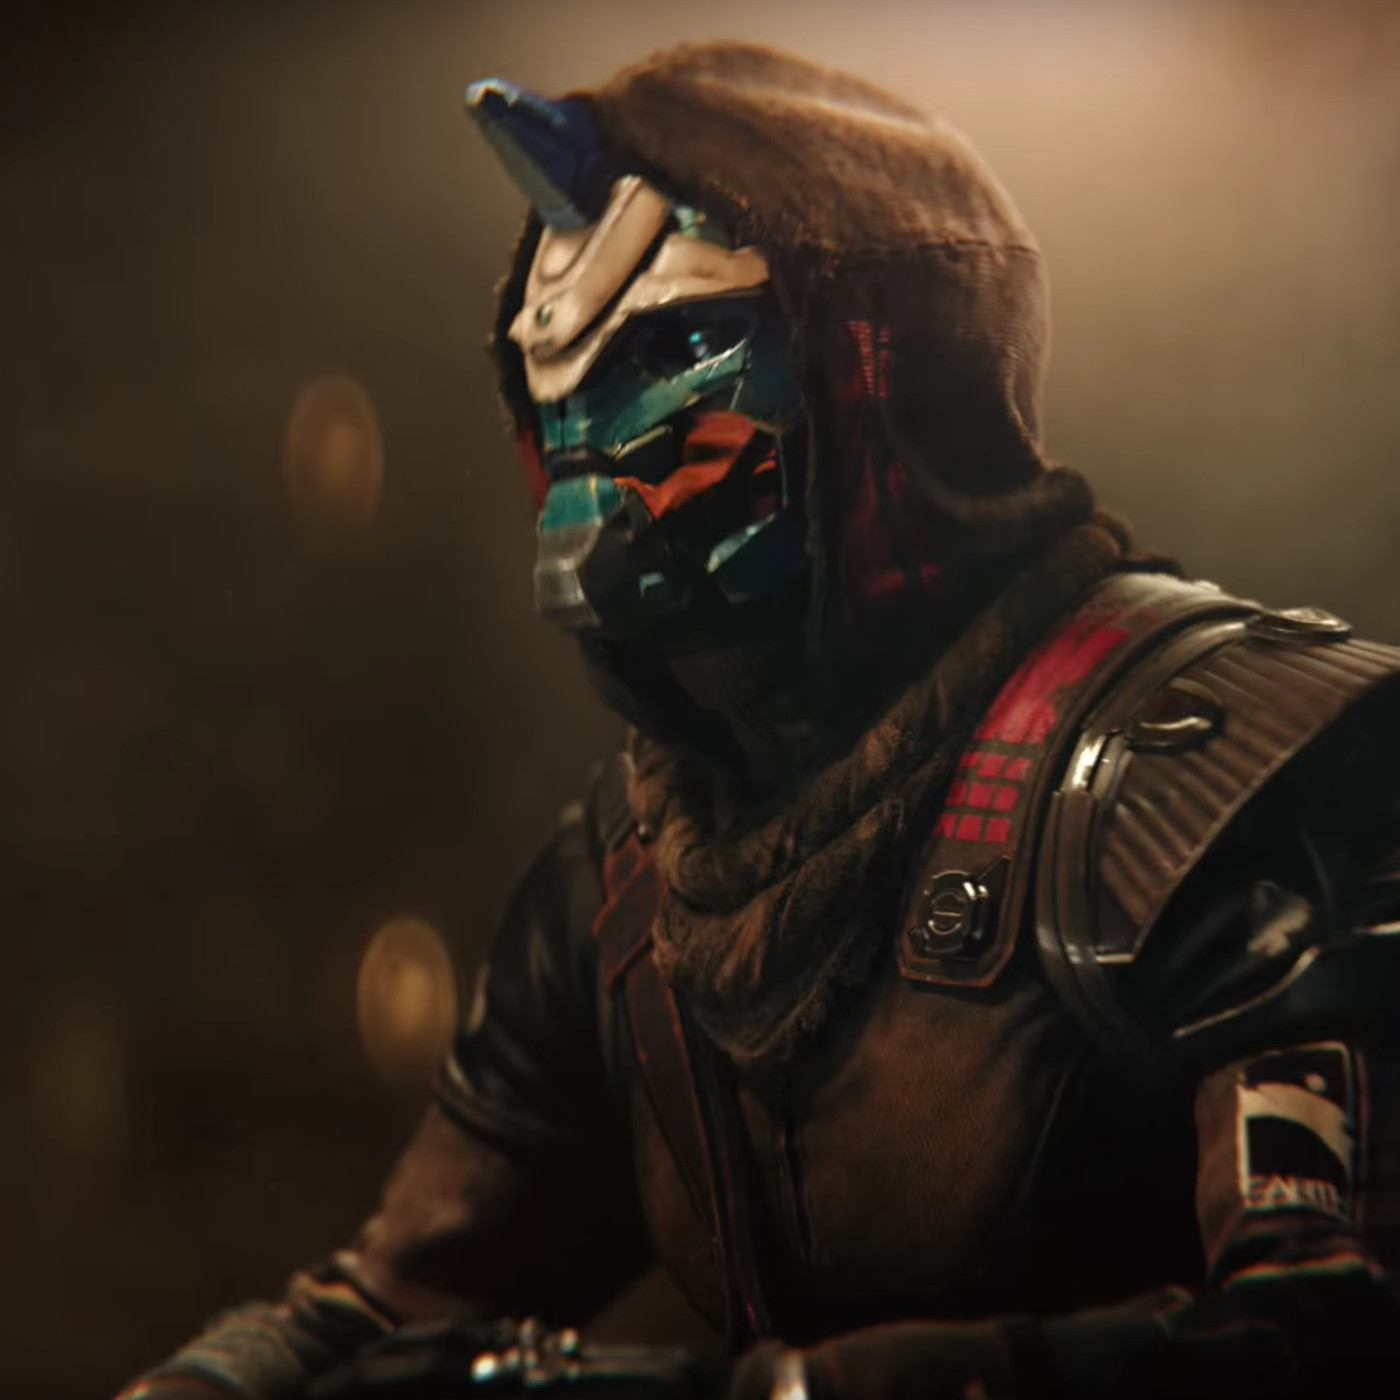 Destiny 2 S Teaser Trailer Brings Something New To The Franchise A Sense Of Humor The Verge